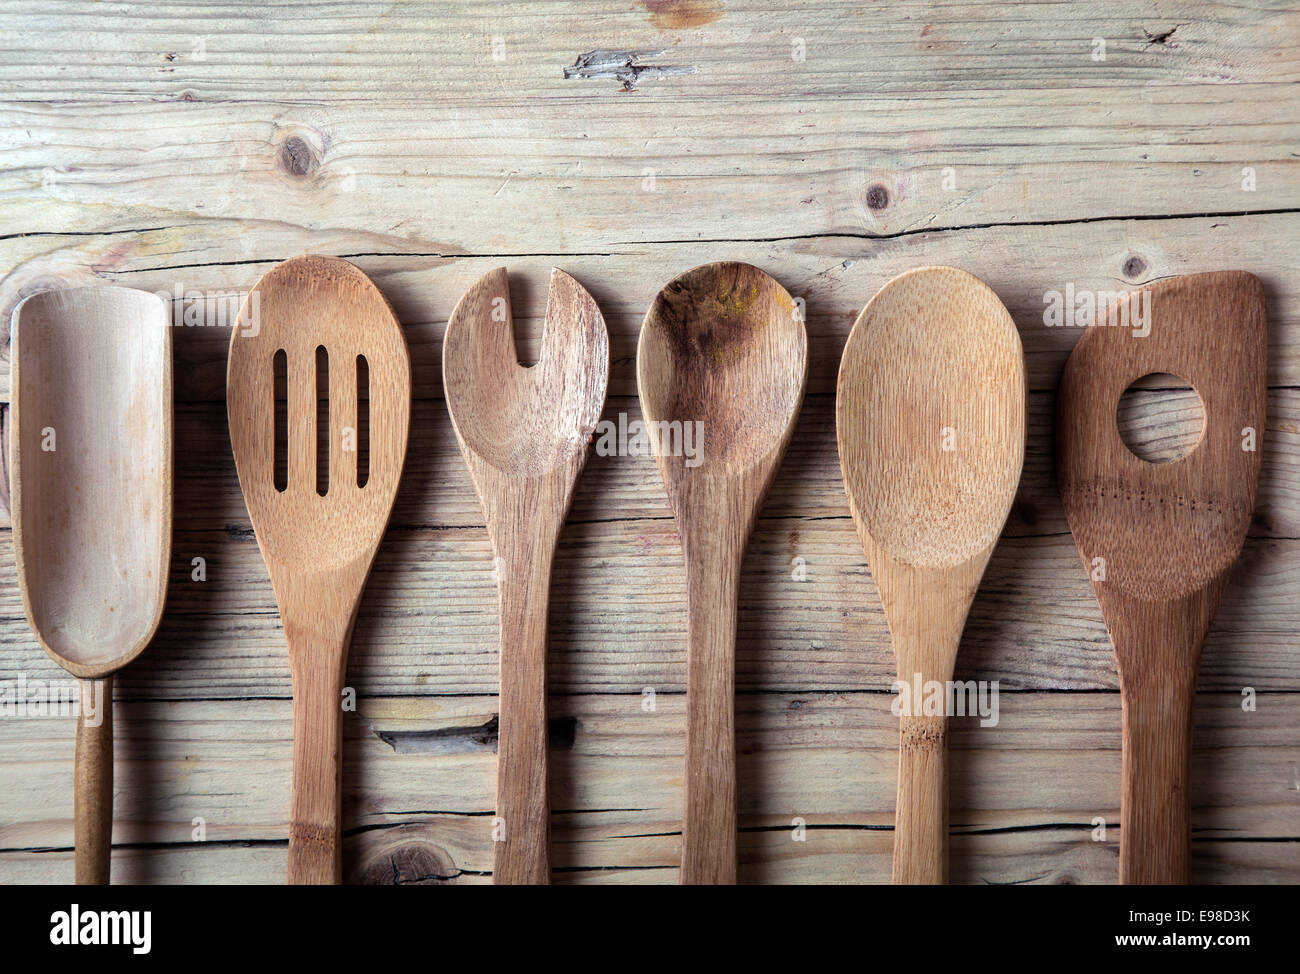 Row of assorted old wooden kitchen utensils lying on a grungy cracked wooden surface in a country kitchen - Stock Image